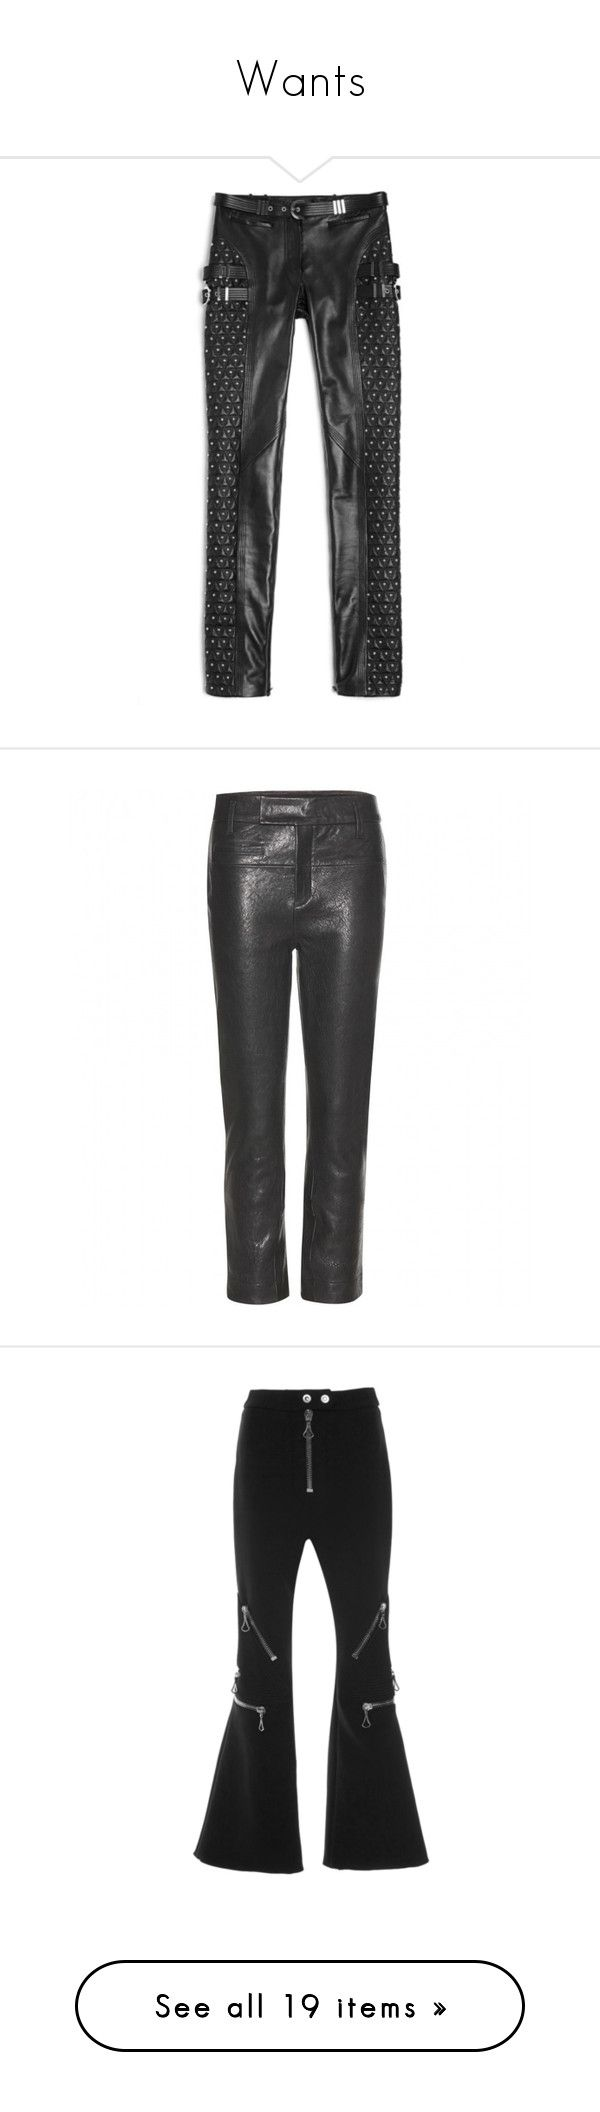 """Wants"" by topshelfxx ❤ liked on Polyvore featuring pants, versace, jeans / pants / leggings, versace trousers, studded leather pants, versace pants, black, genuine leather pants, leather trousers and leather pants"